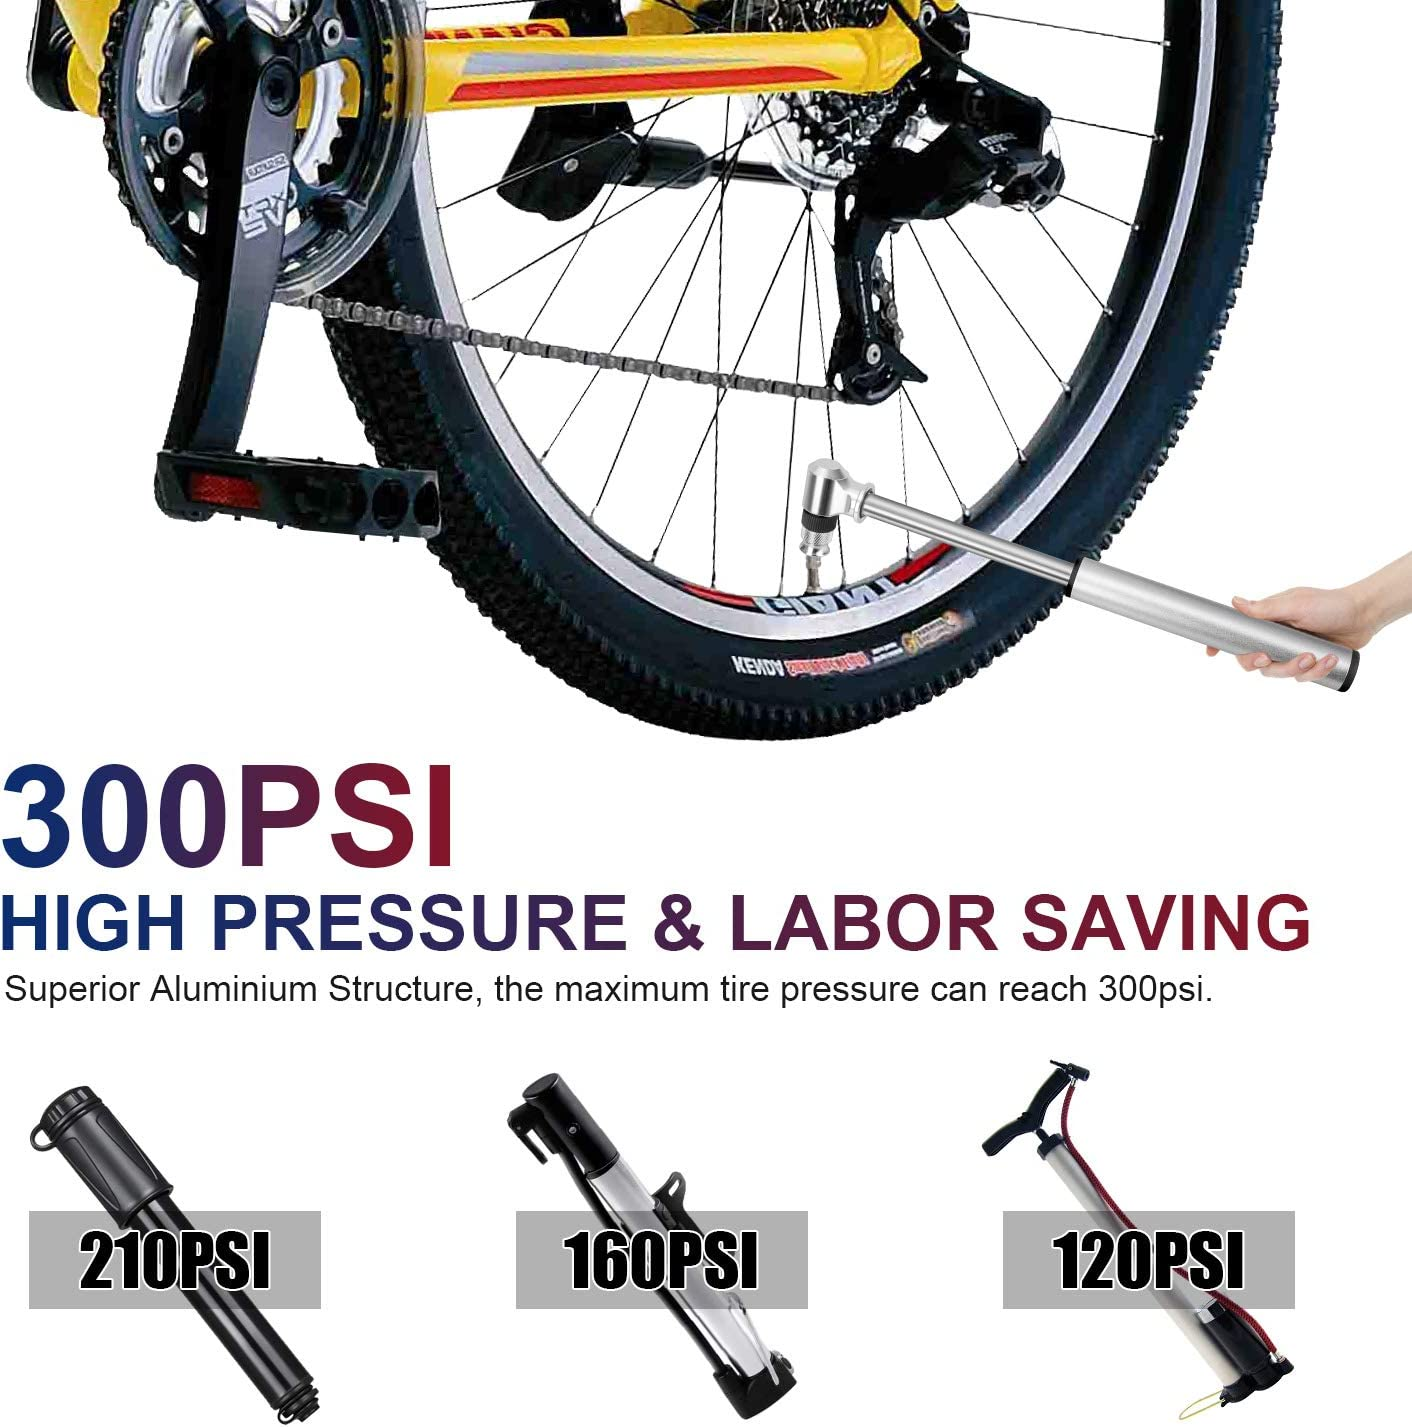 Bike Pump Bike Repair Tool Kit,300 PSI Aluminum Mini Bicycle Pump with Ball Needle and Frame Mount,Accurate Fast Inflation,Fits Presta /& Schrader Valve Bike Pump for Road,16 in 1 Bicycle Tool Kit